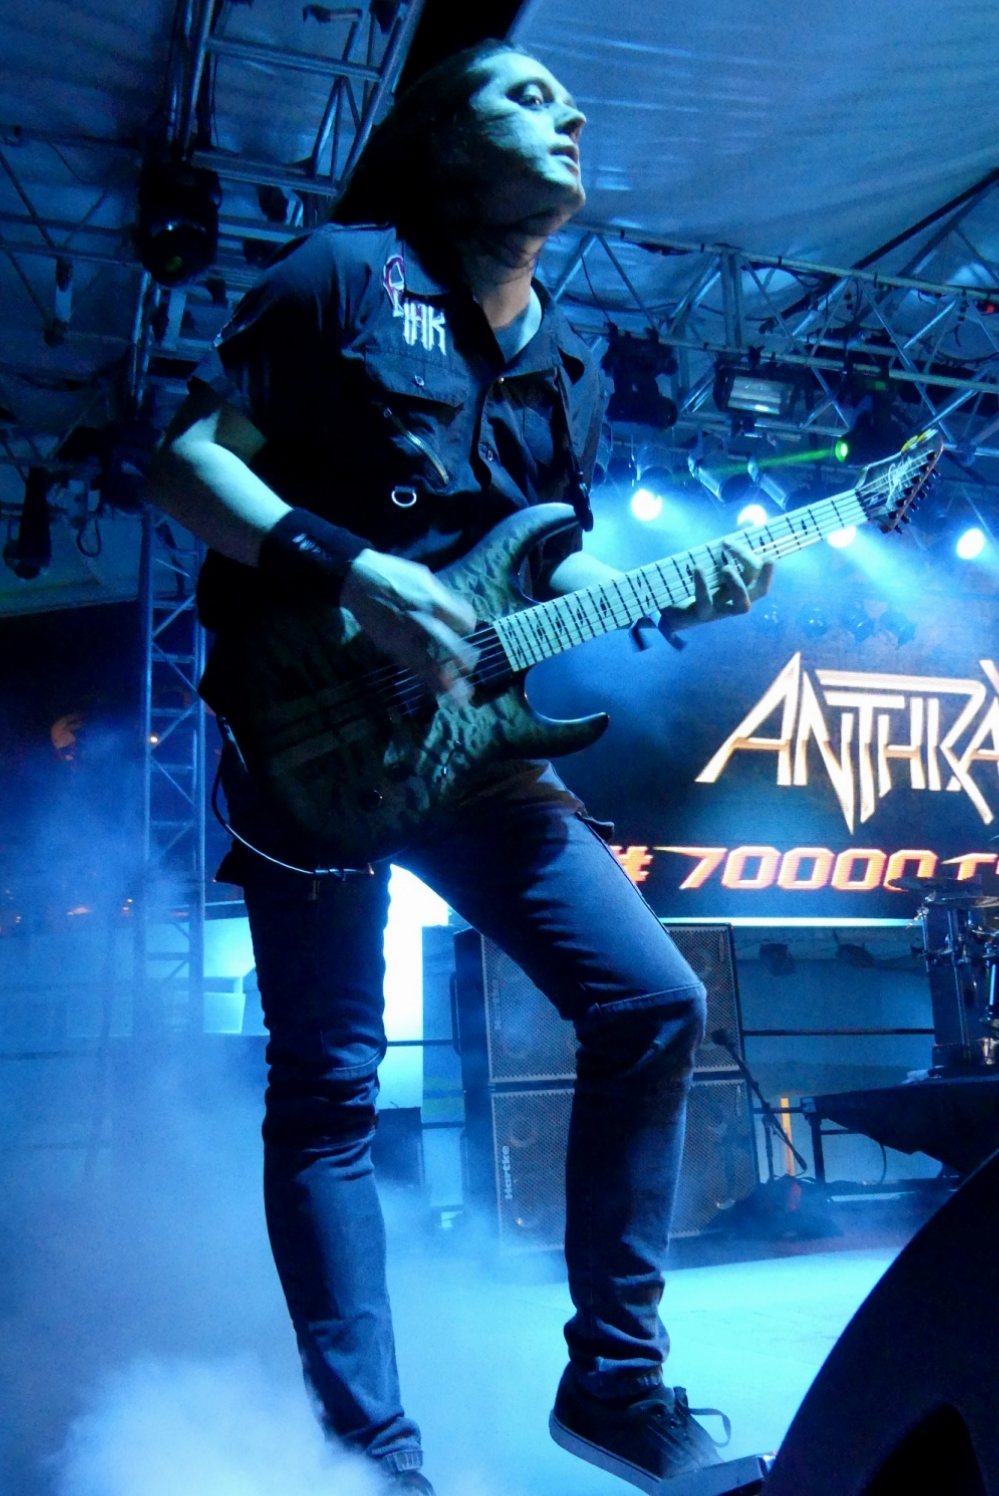 ANTHRAX_70000-tons-of-metal-2017-vampster_2